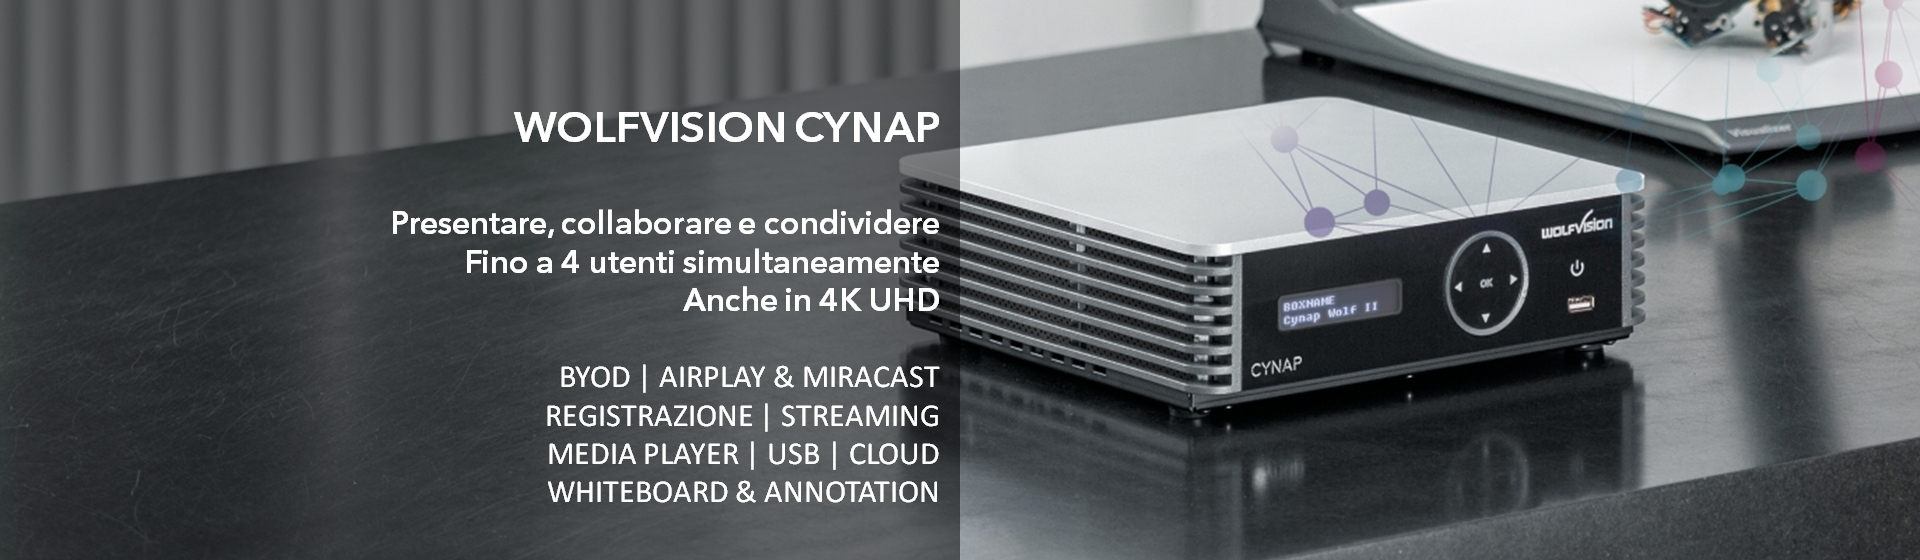 slide_wolfvision_cynap